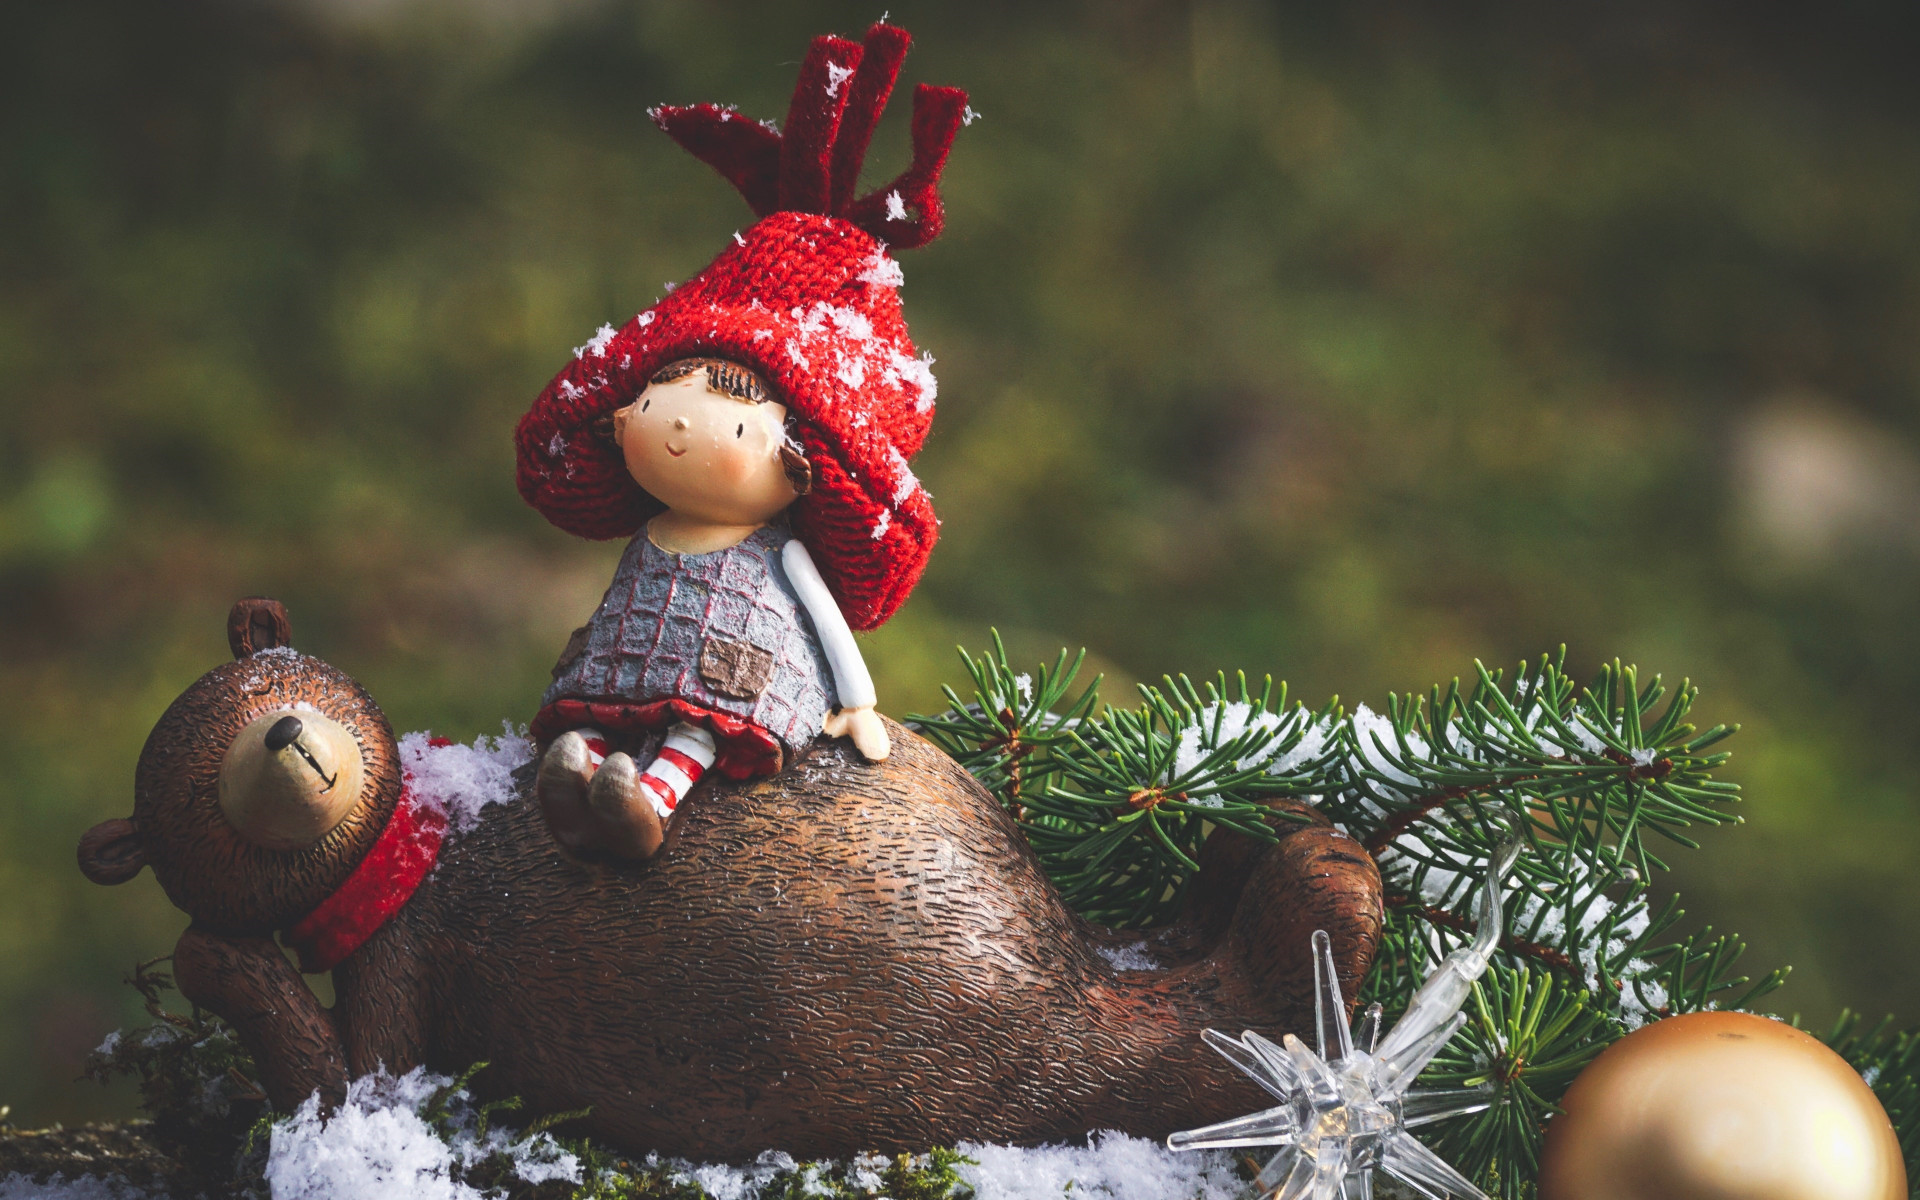 Cute Christmas decoration | 1920x1200 wallpaper